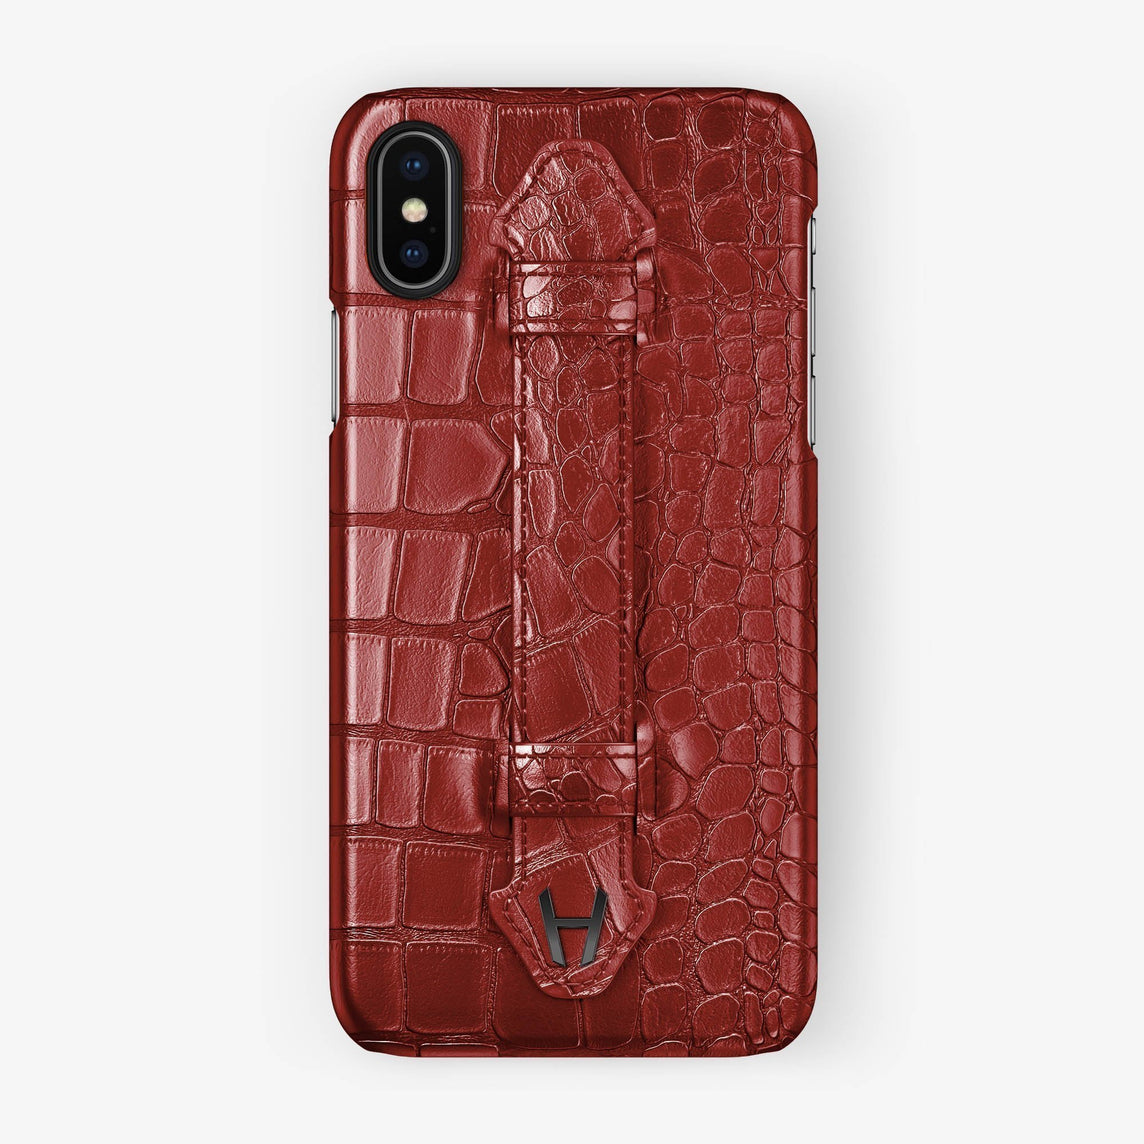 Red Alligator iPhone Finger Case for iPhone XS Max finishing black - Hadoro Luxury Cases